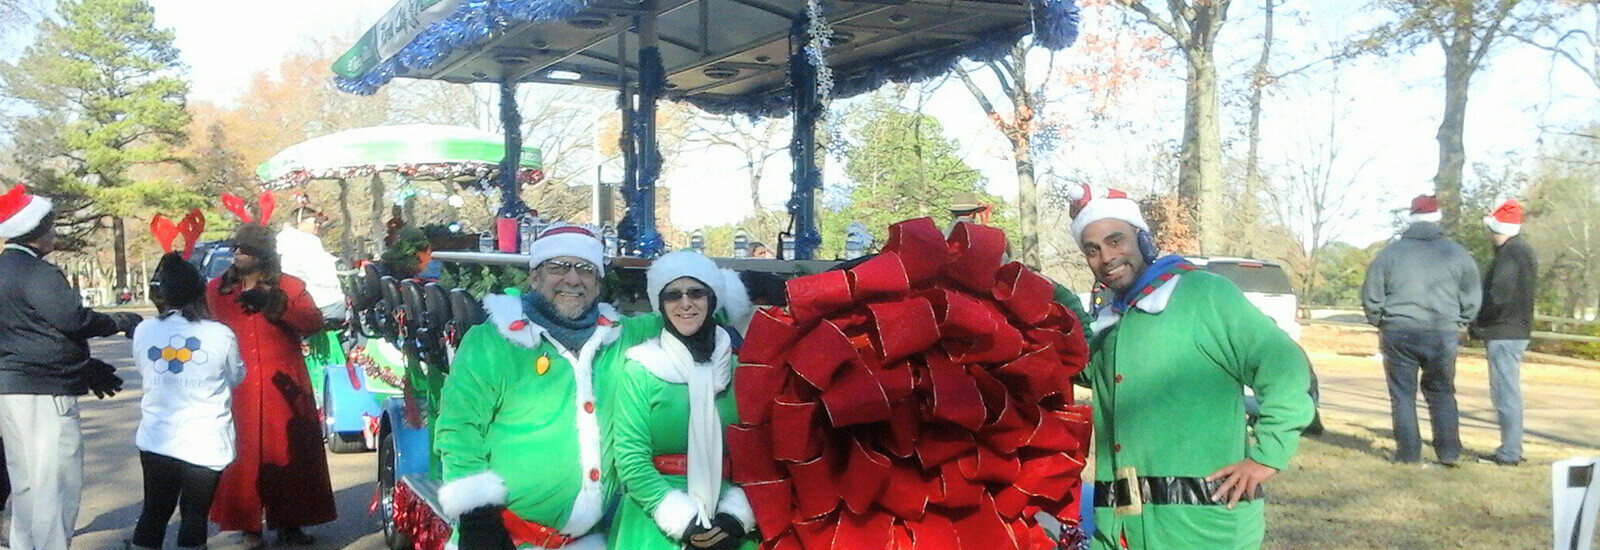 Join River City Pedalers at the Beale street  Christmas Parade